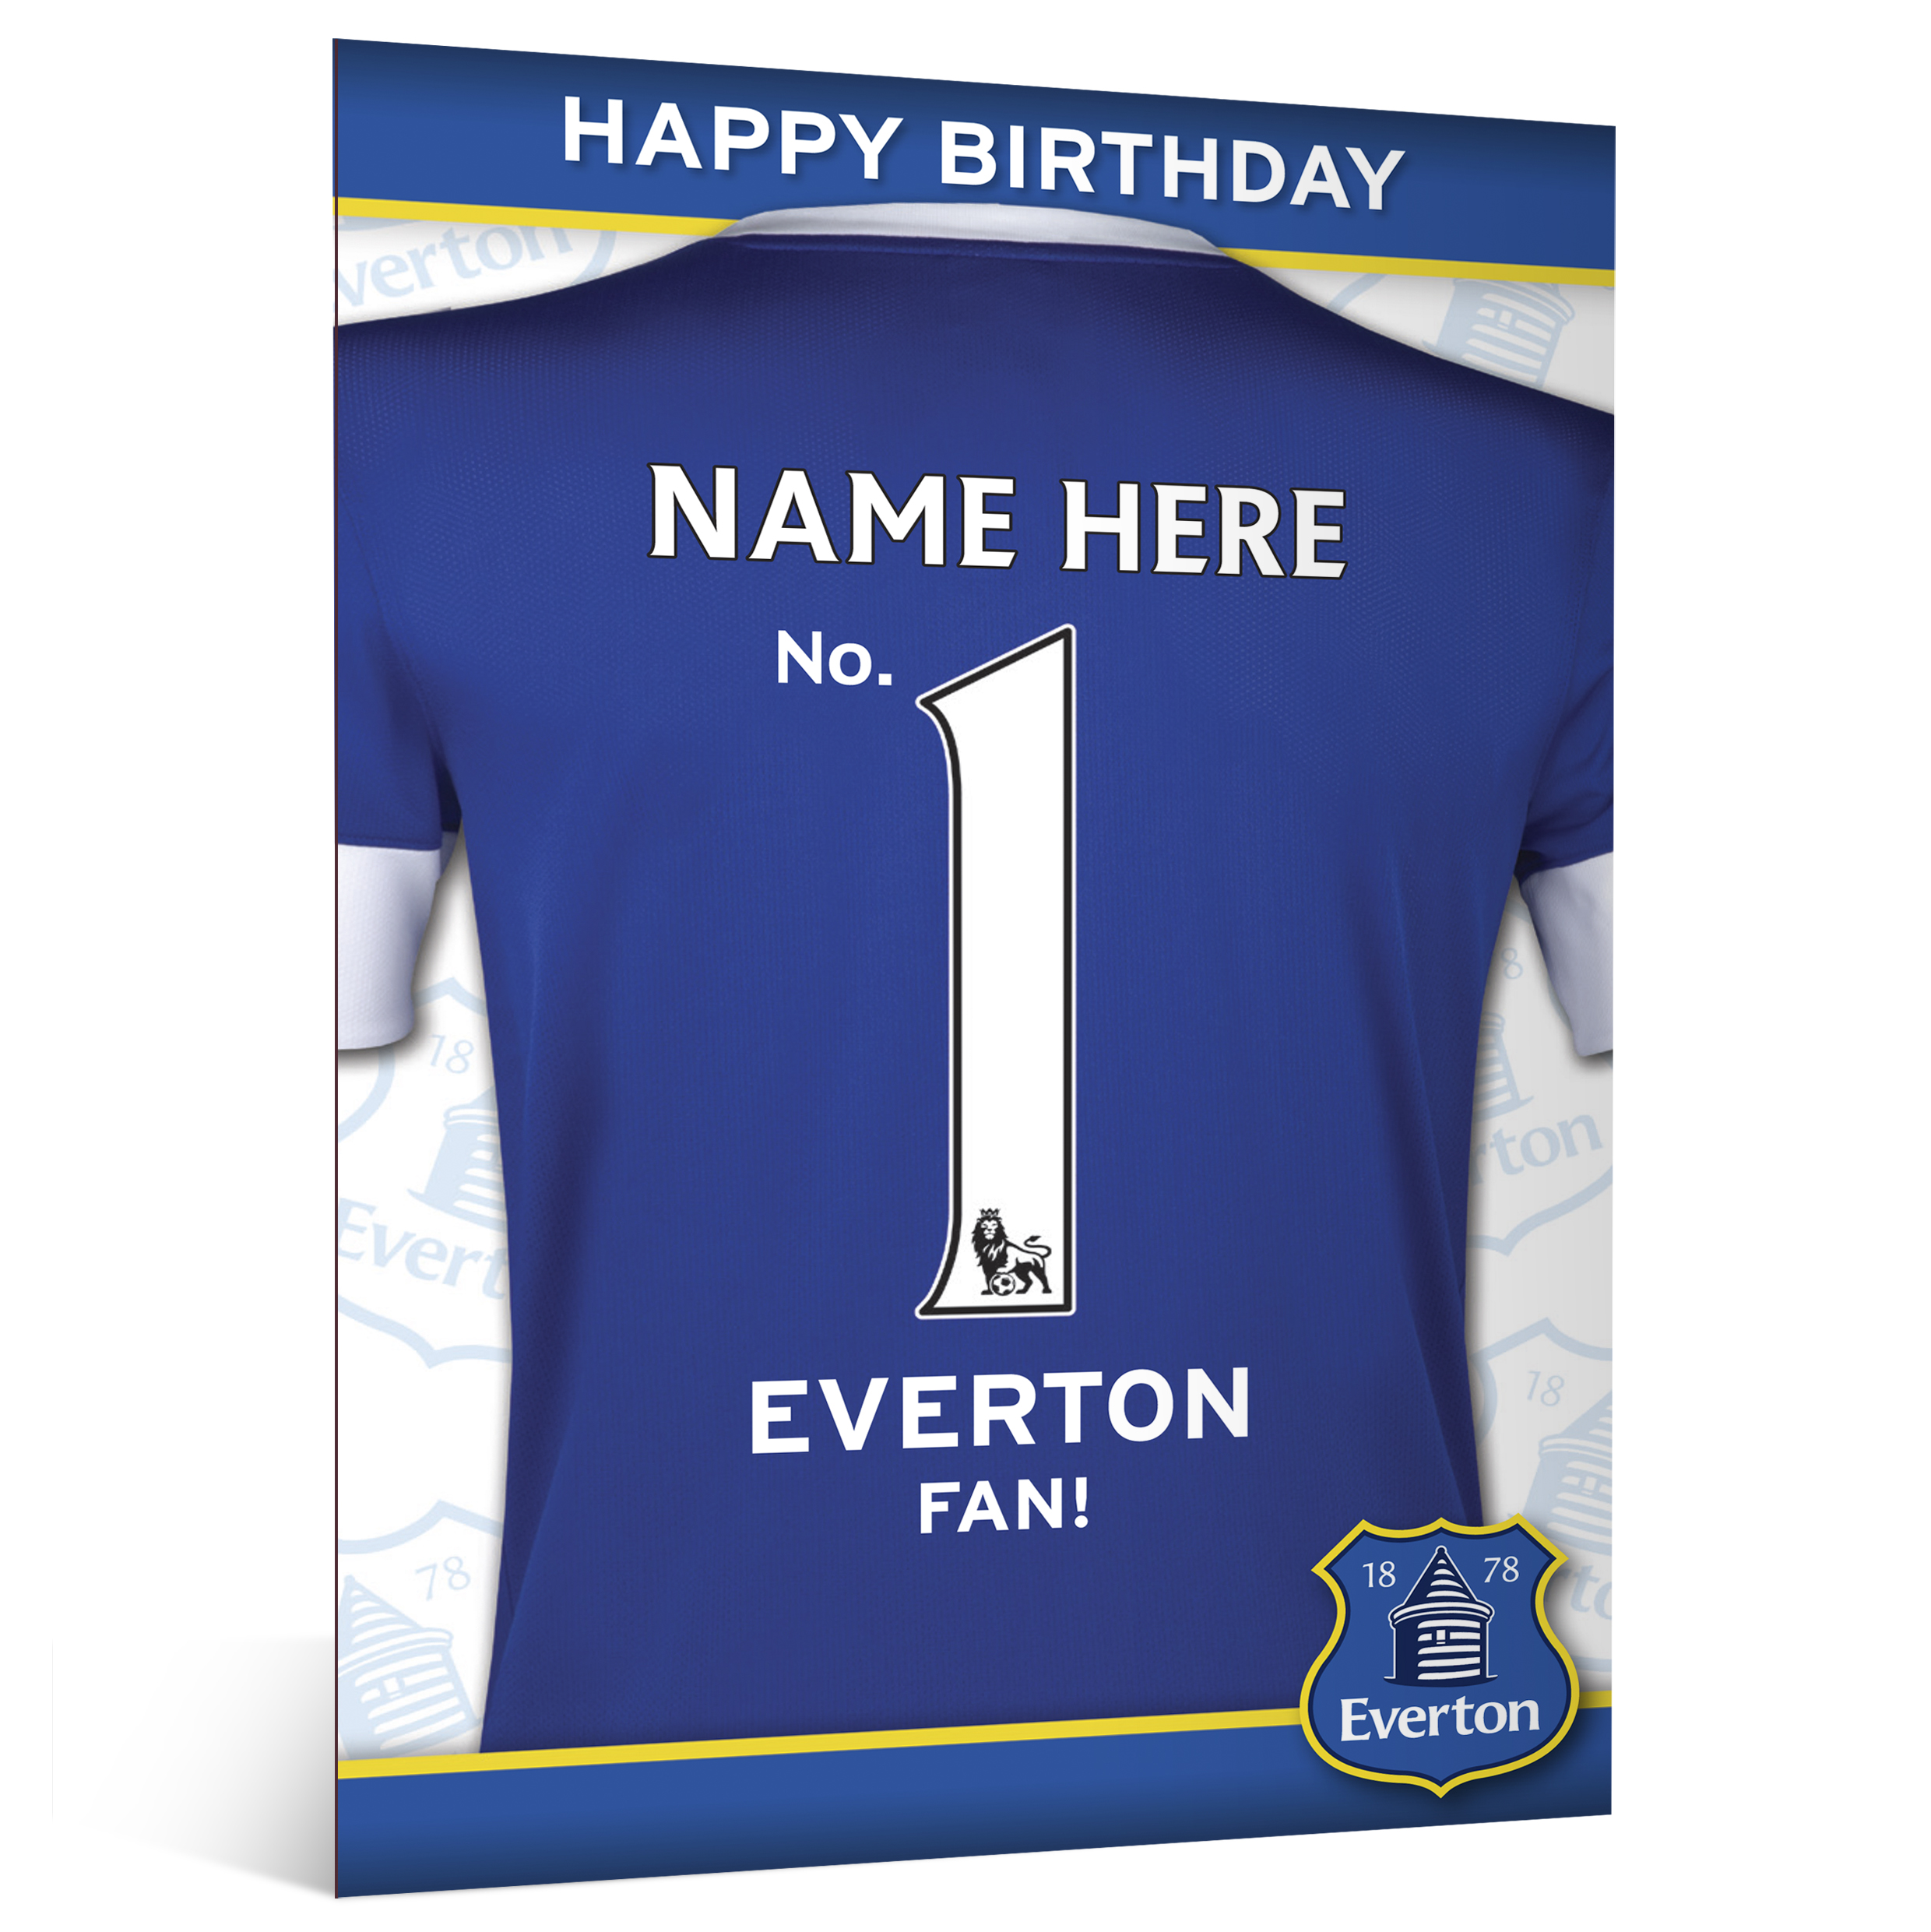 Everton Personalised Happy Birthday Card - No. 1 Fan